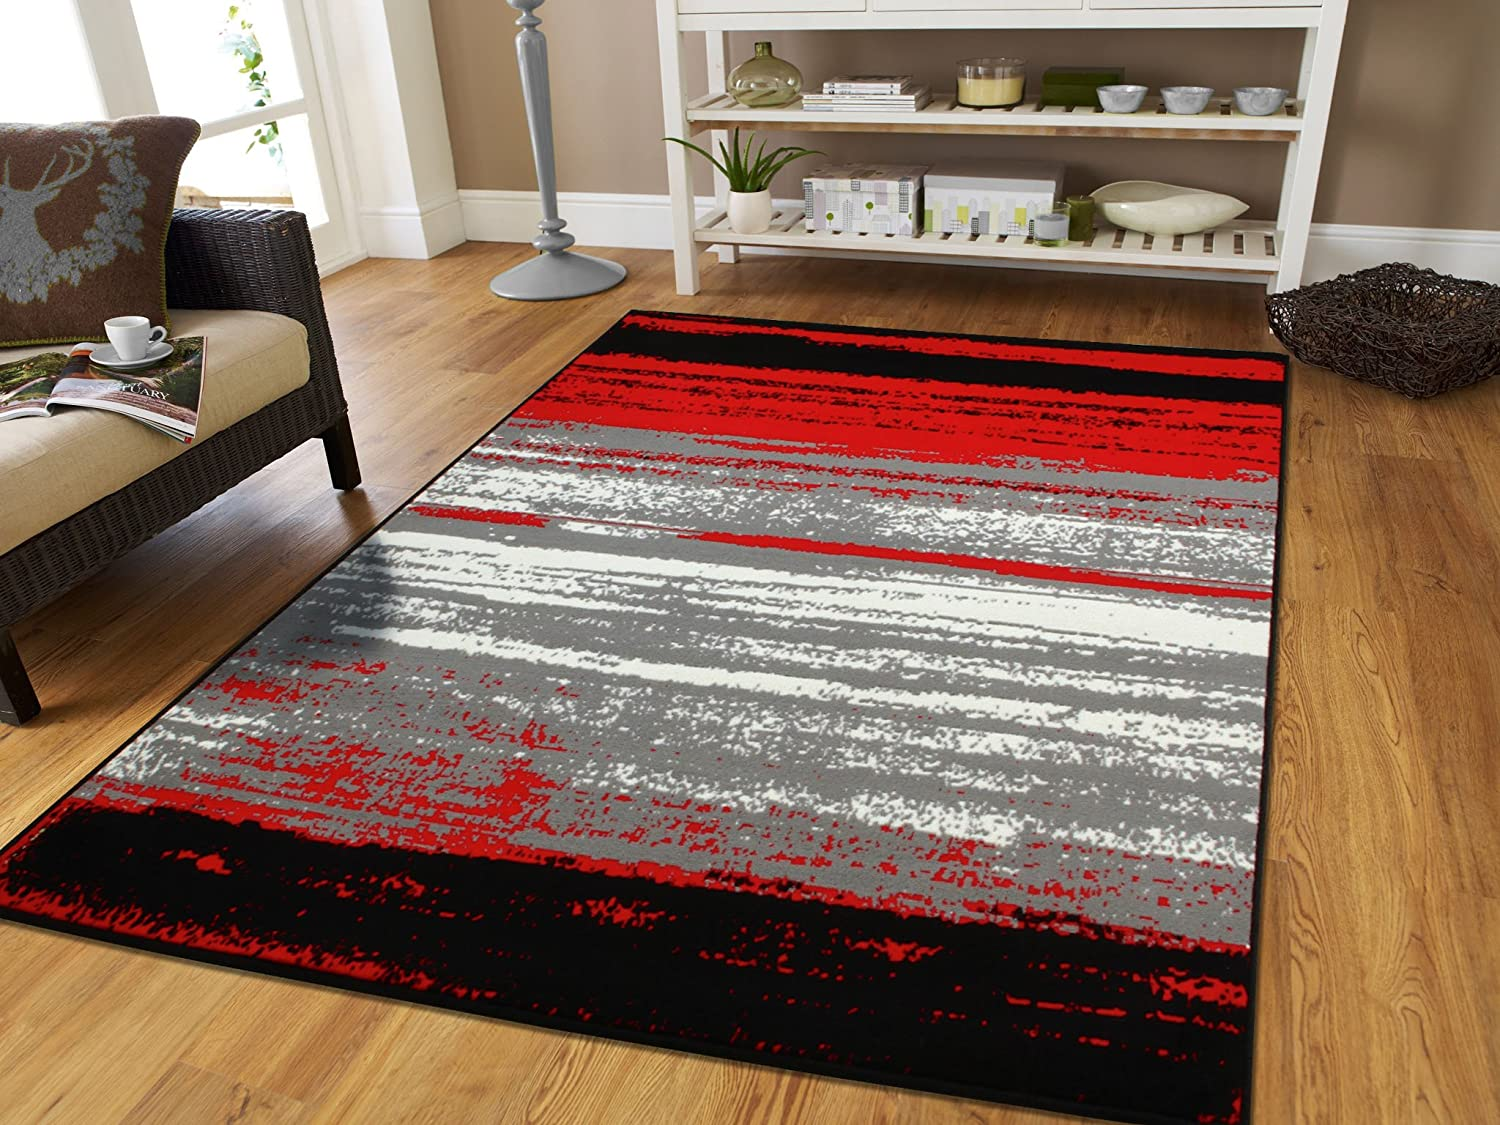 Room 8x10 Abstract Area Rugs, Rug Sets For Living Rooms